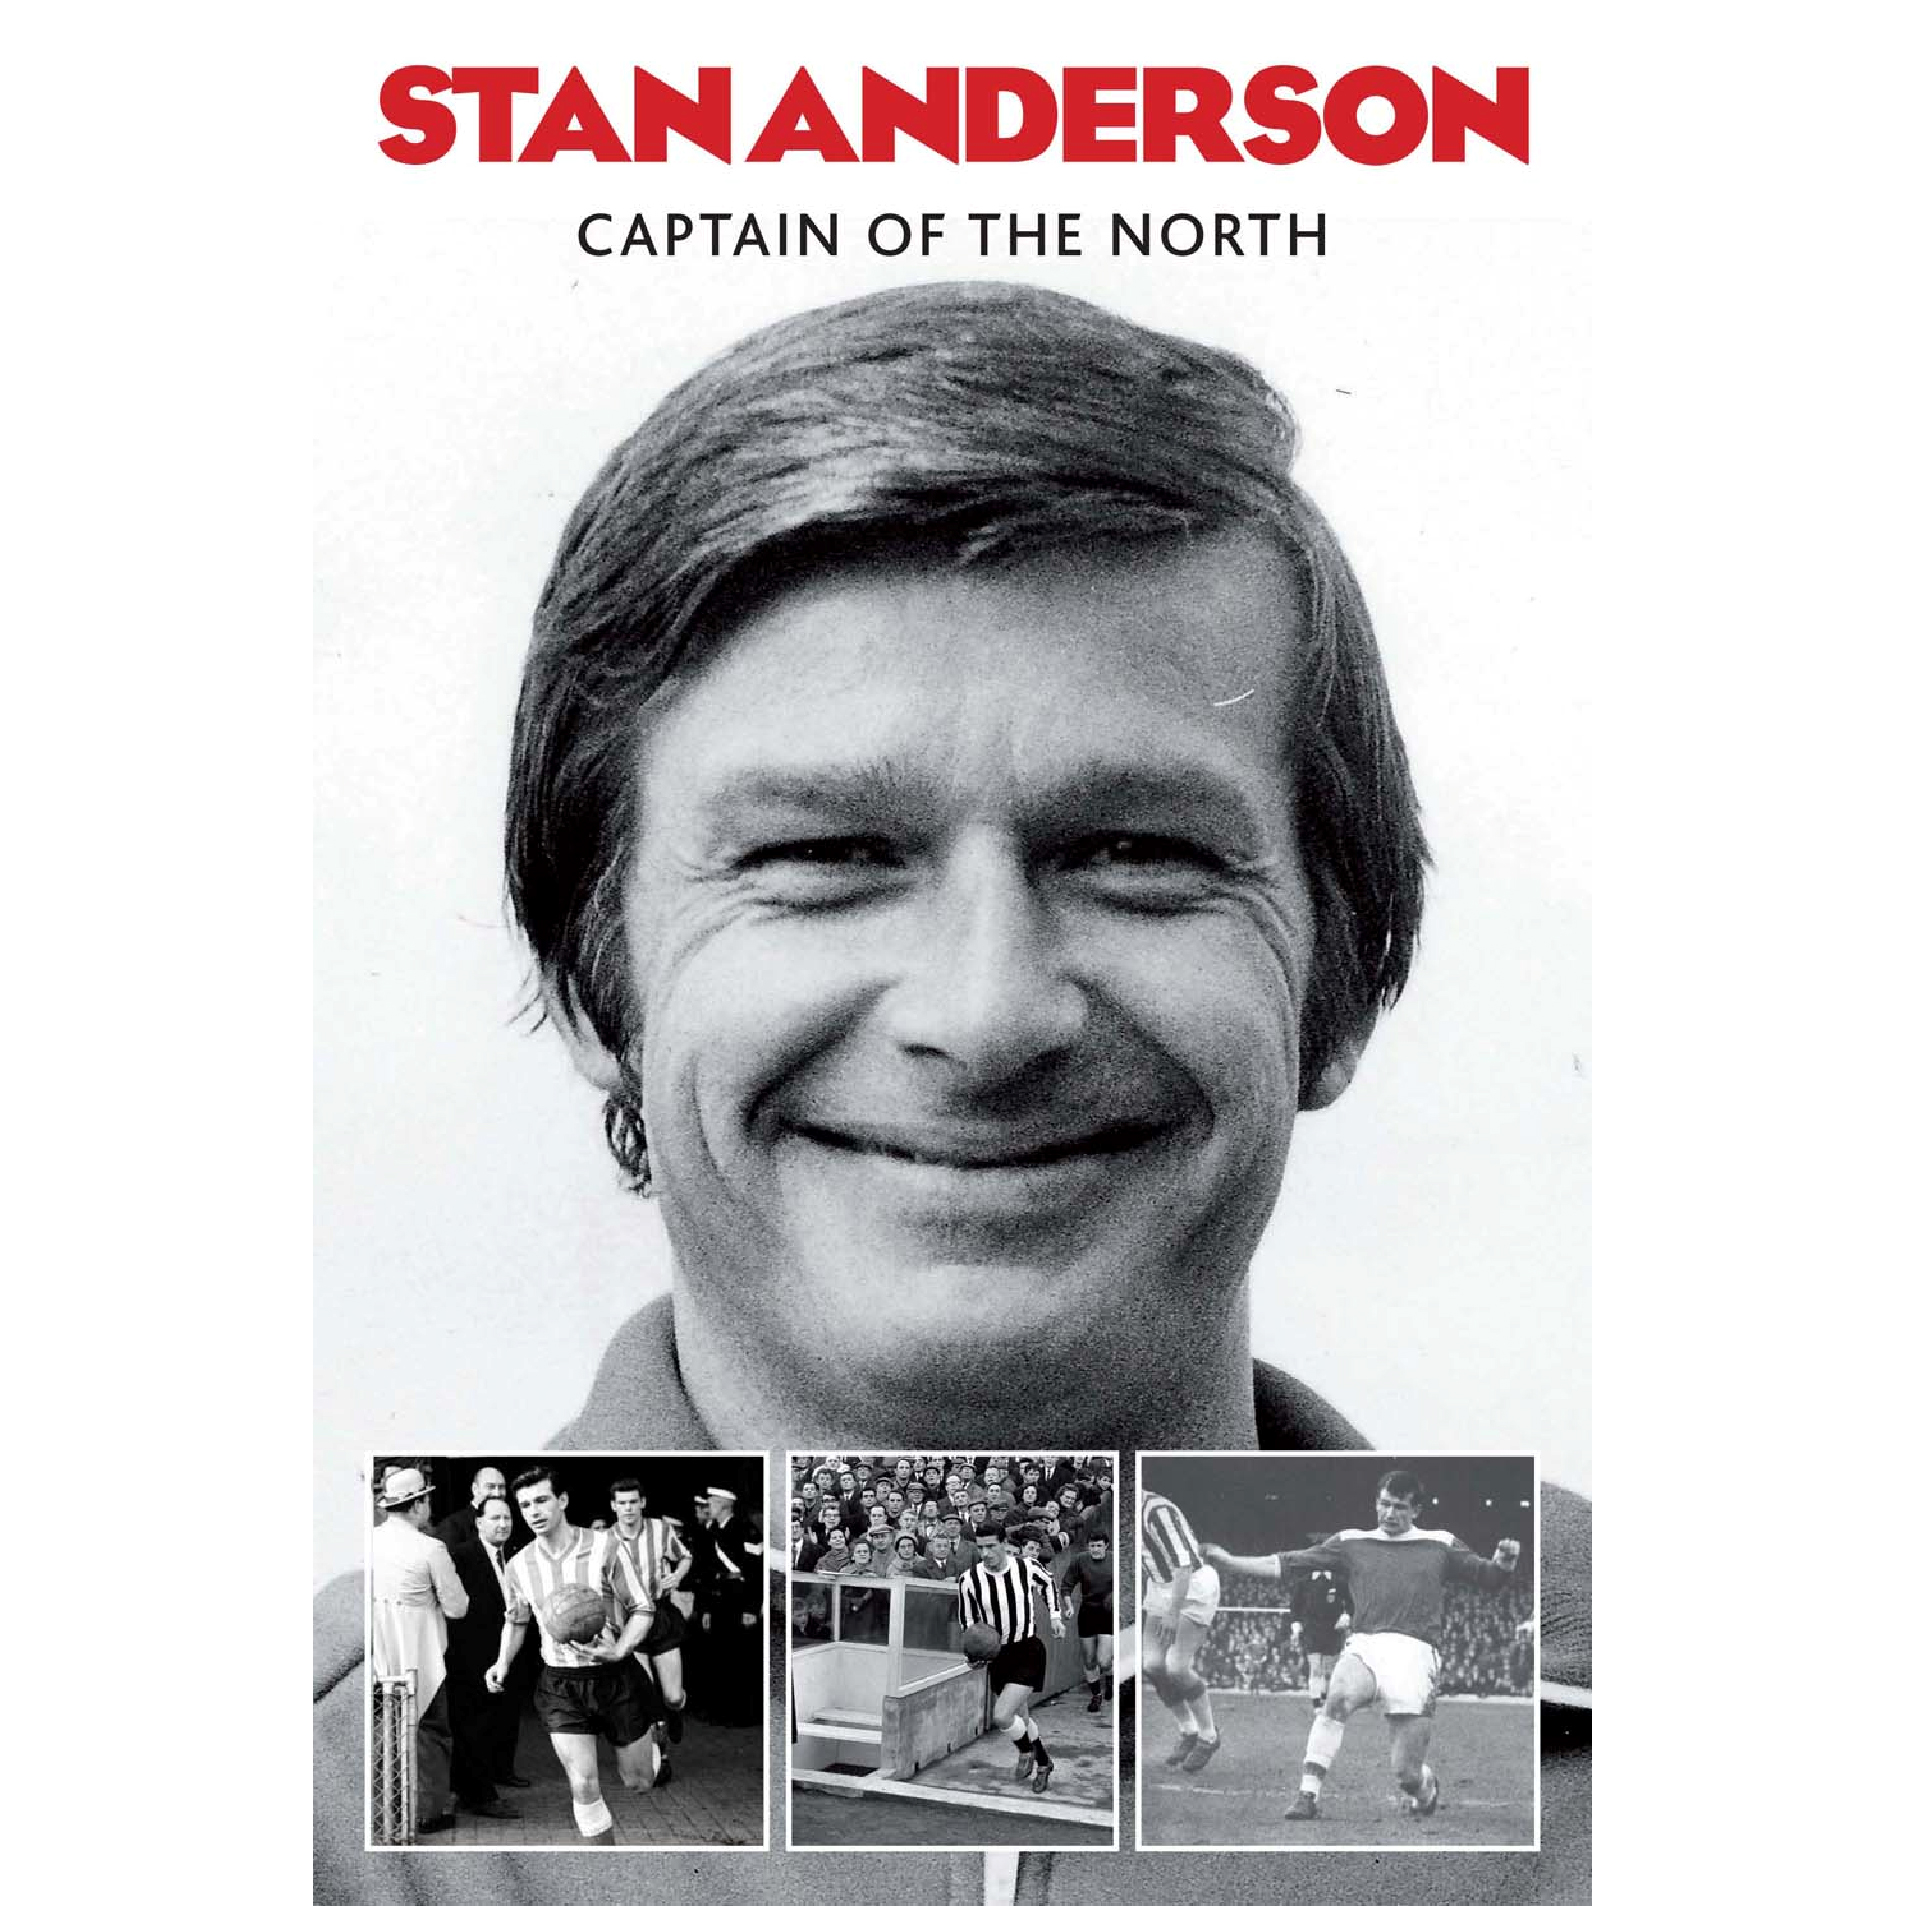 Sunderland Stan Anderson - Captain of the North Book